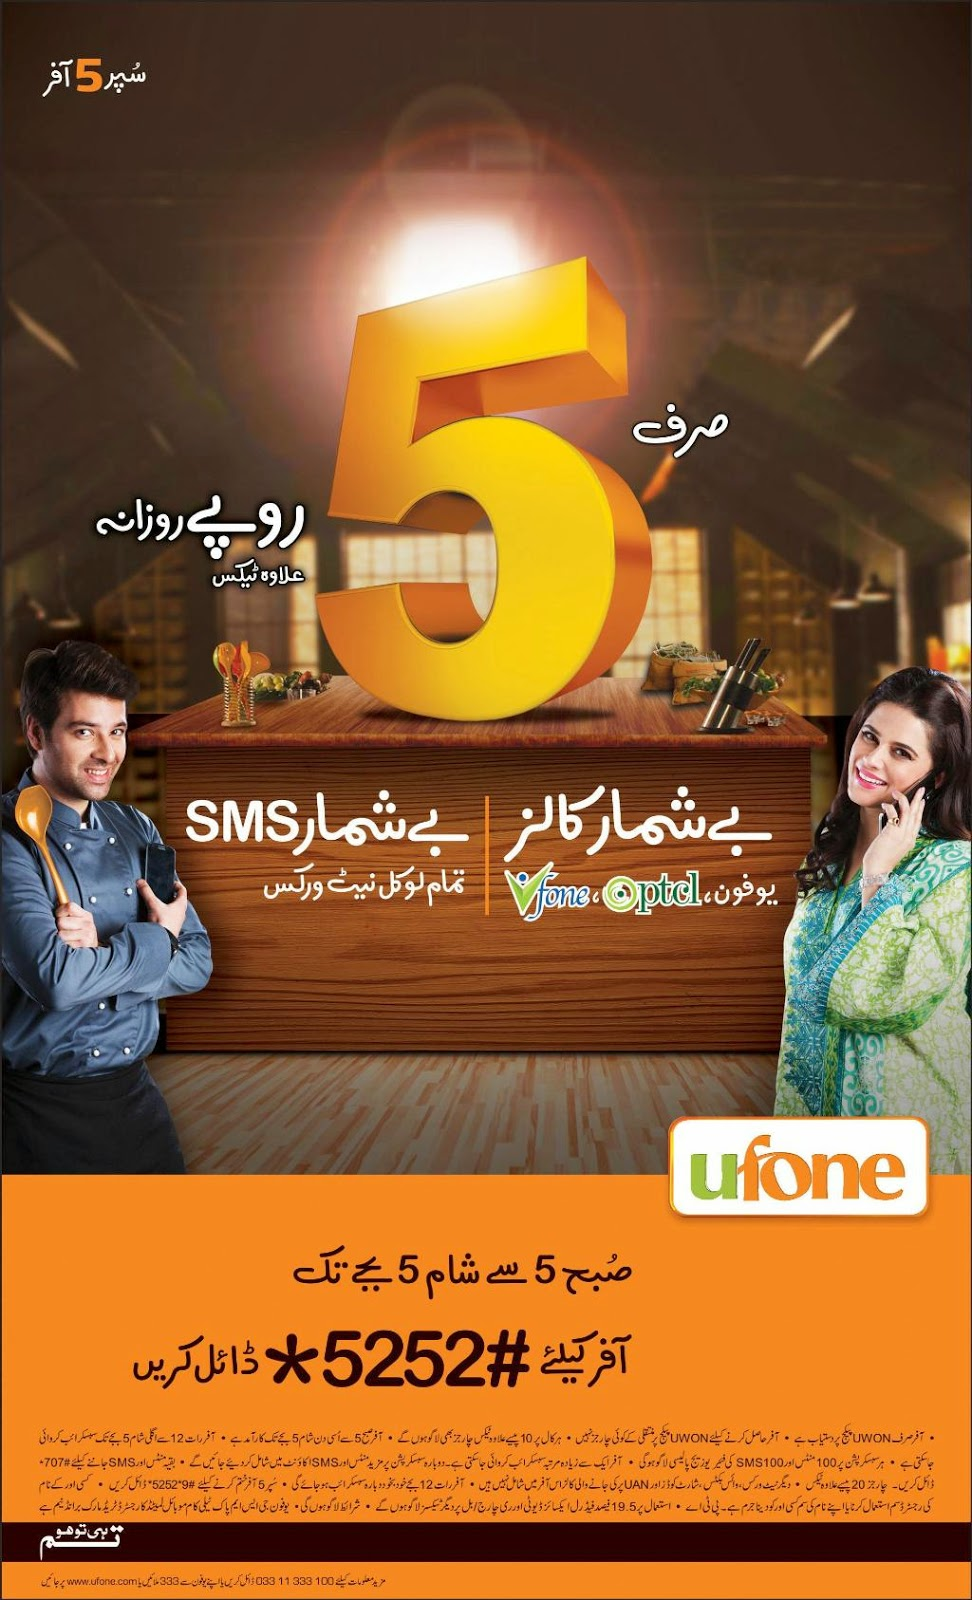 Ufone Super Five Offer Banner